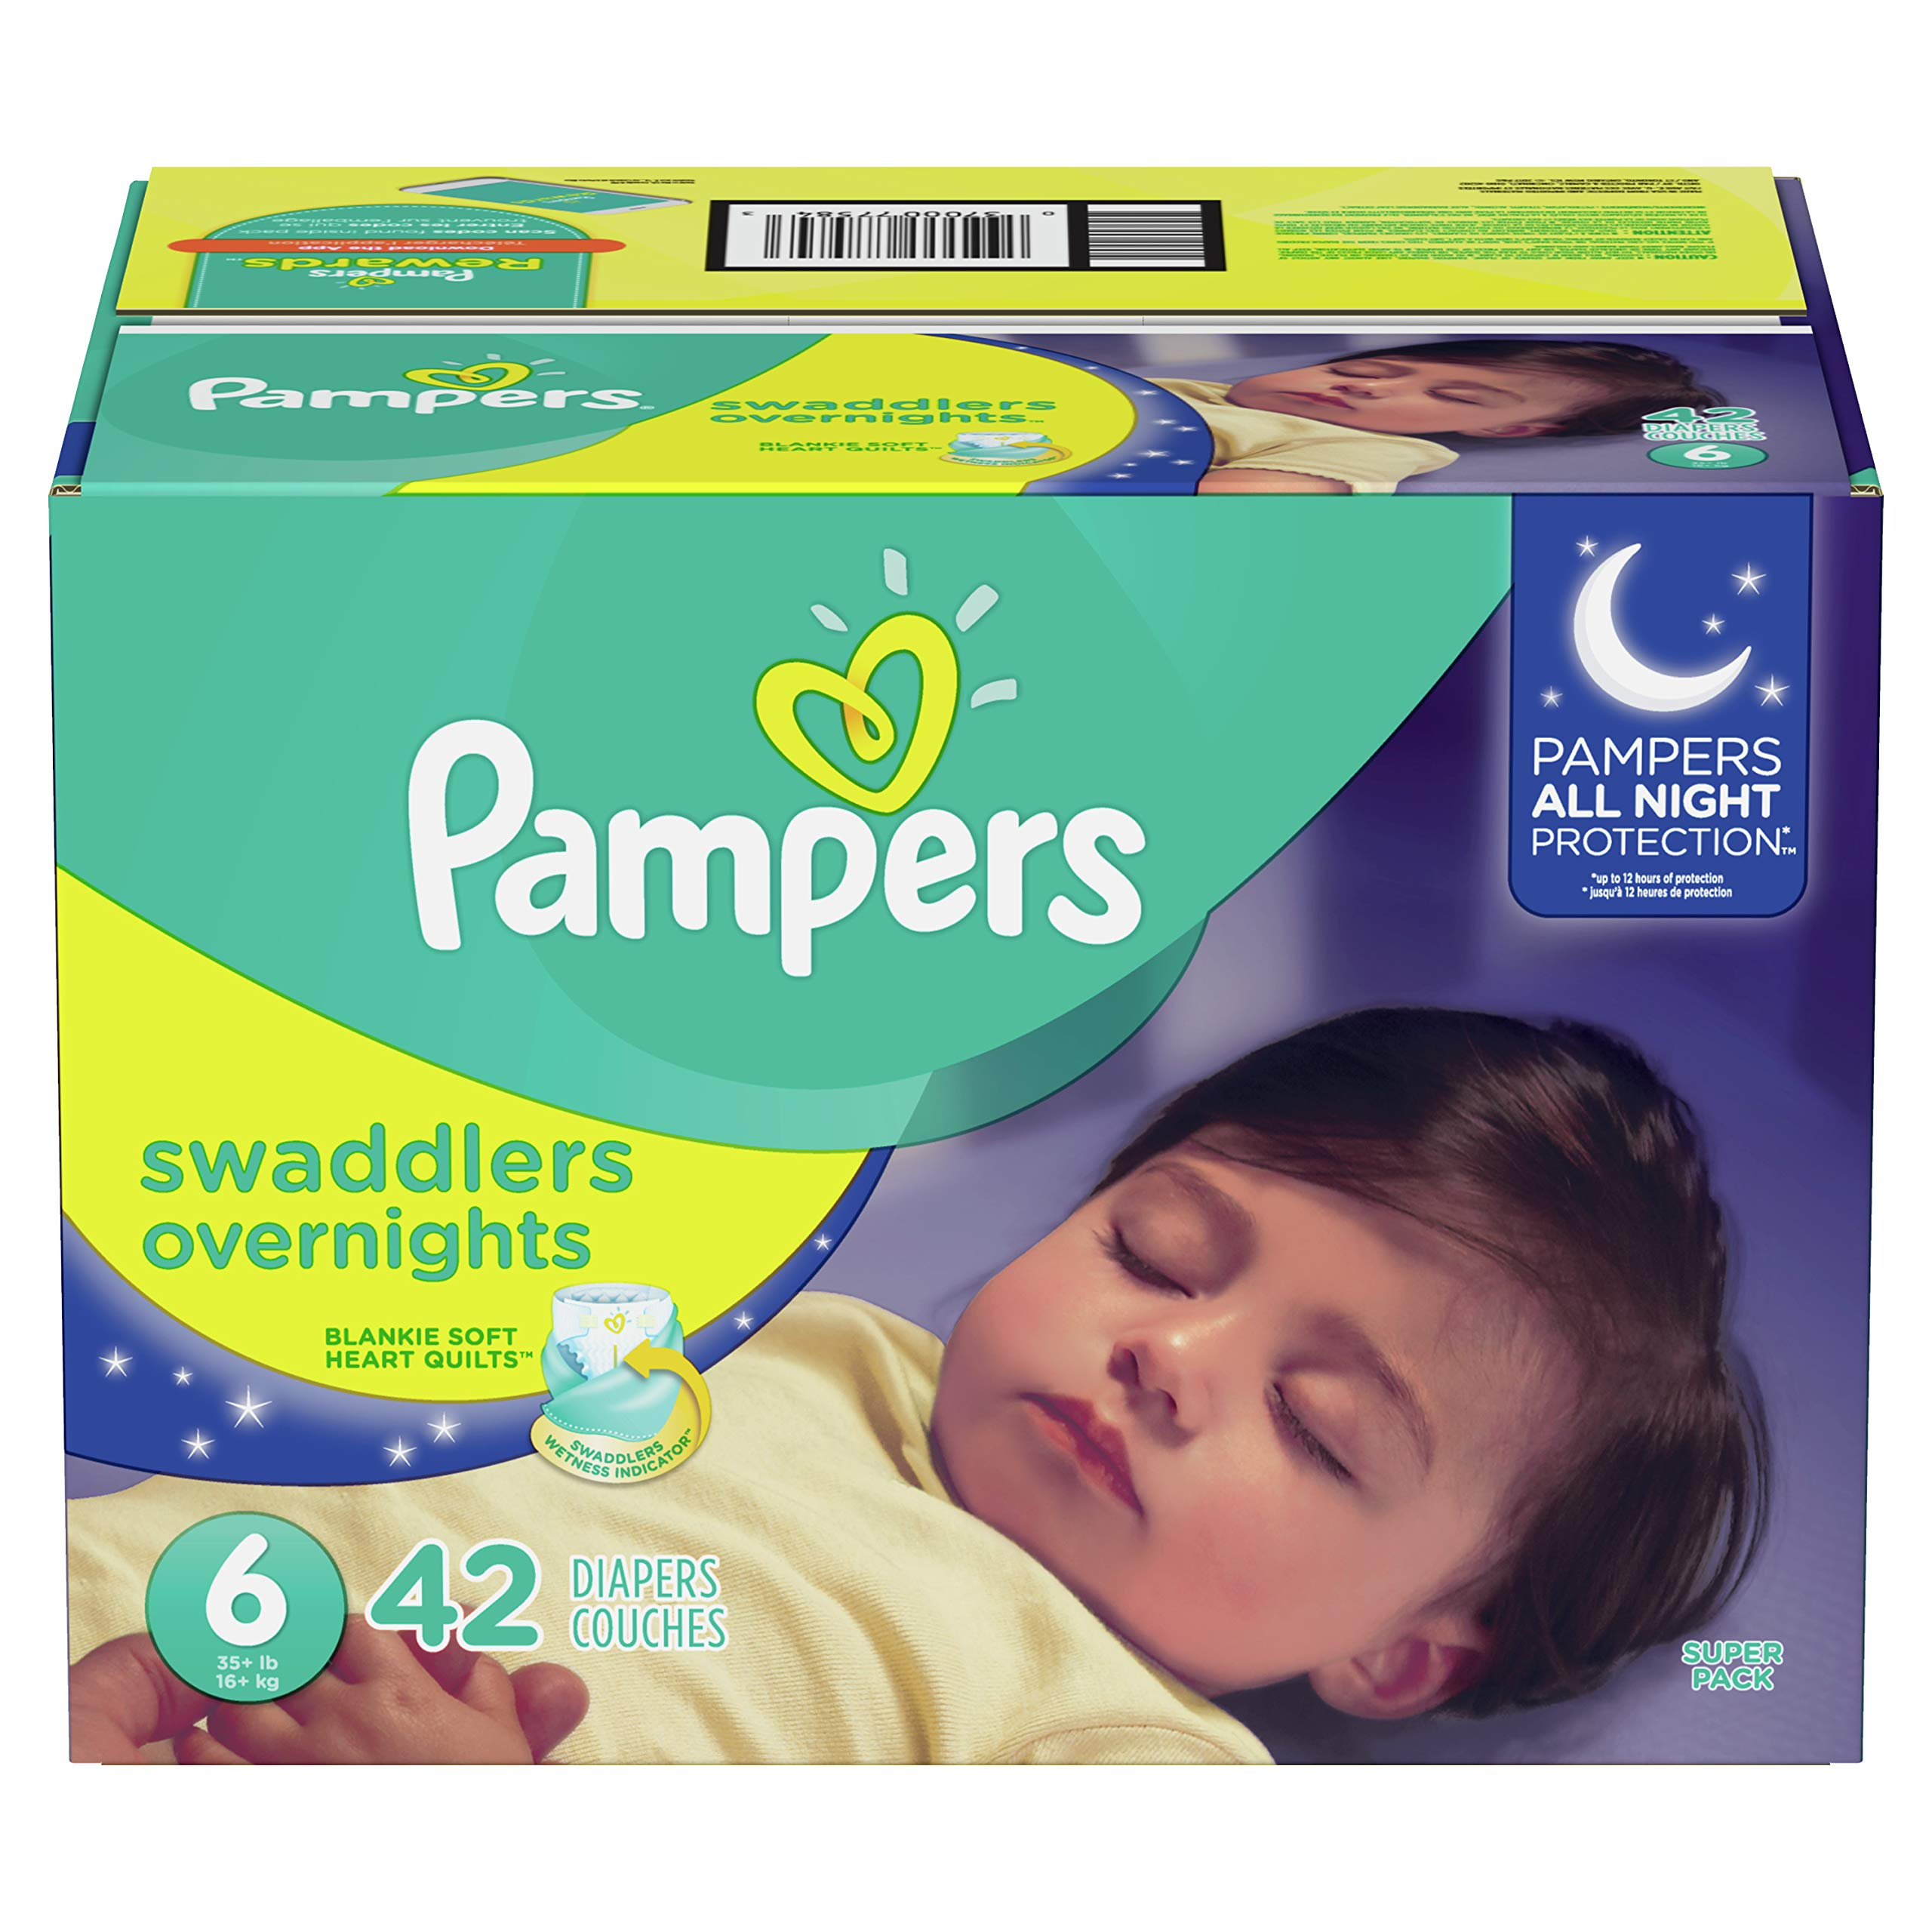 Diapers Size 6, 42 Count - Pampers Swaddlers Overnights Disposable Baby Diapers, Super Pack by Pampers